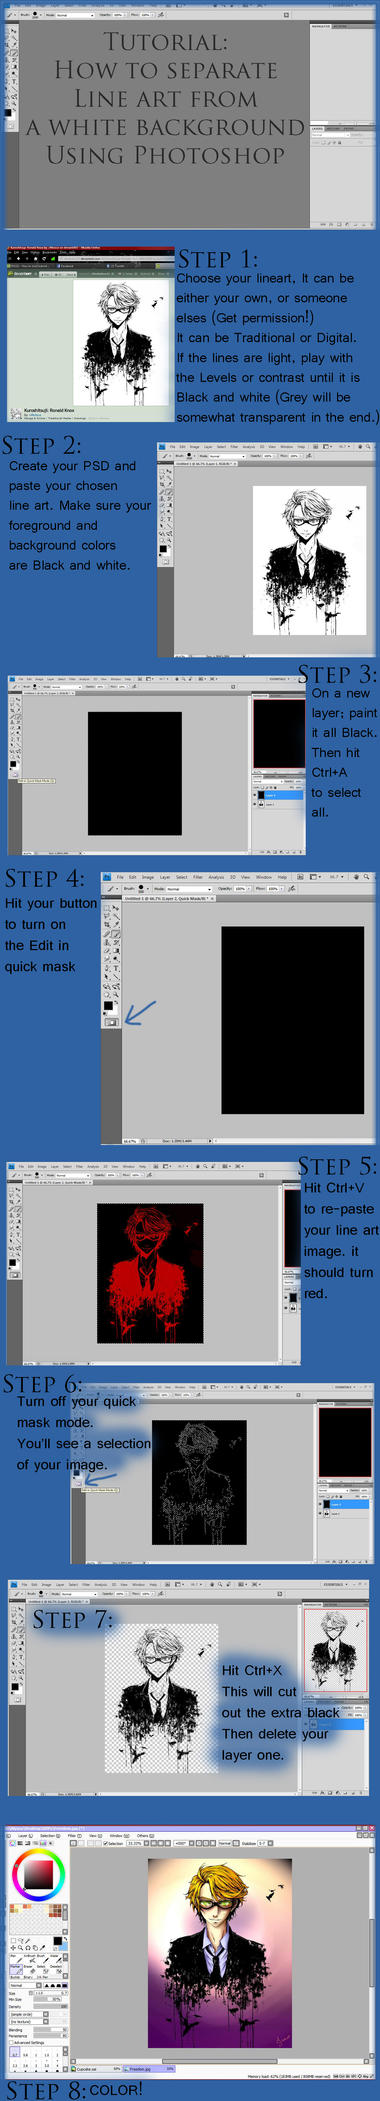 TUTORIAL: Separate line art from background by TiBun